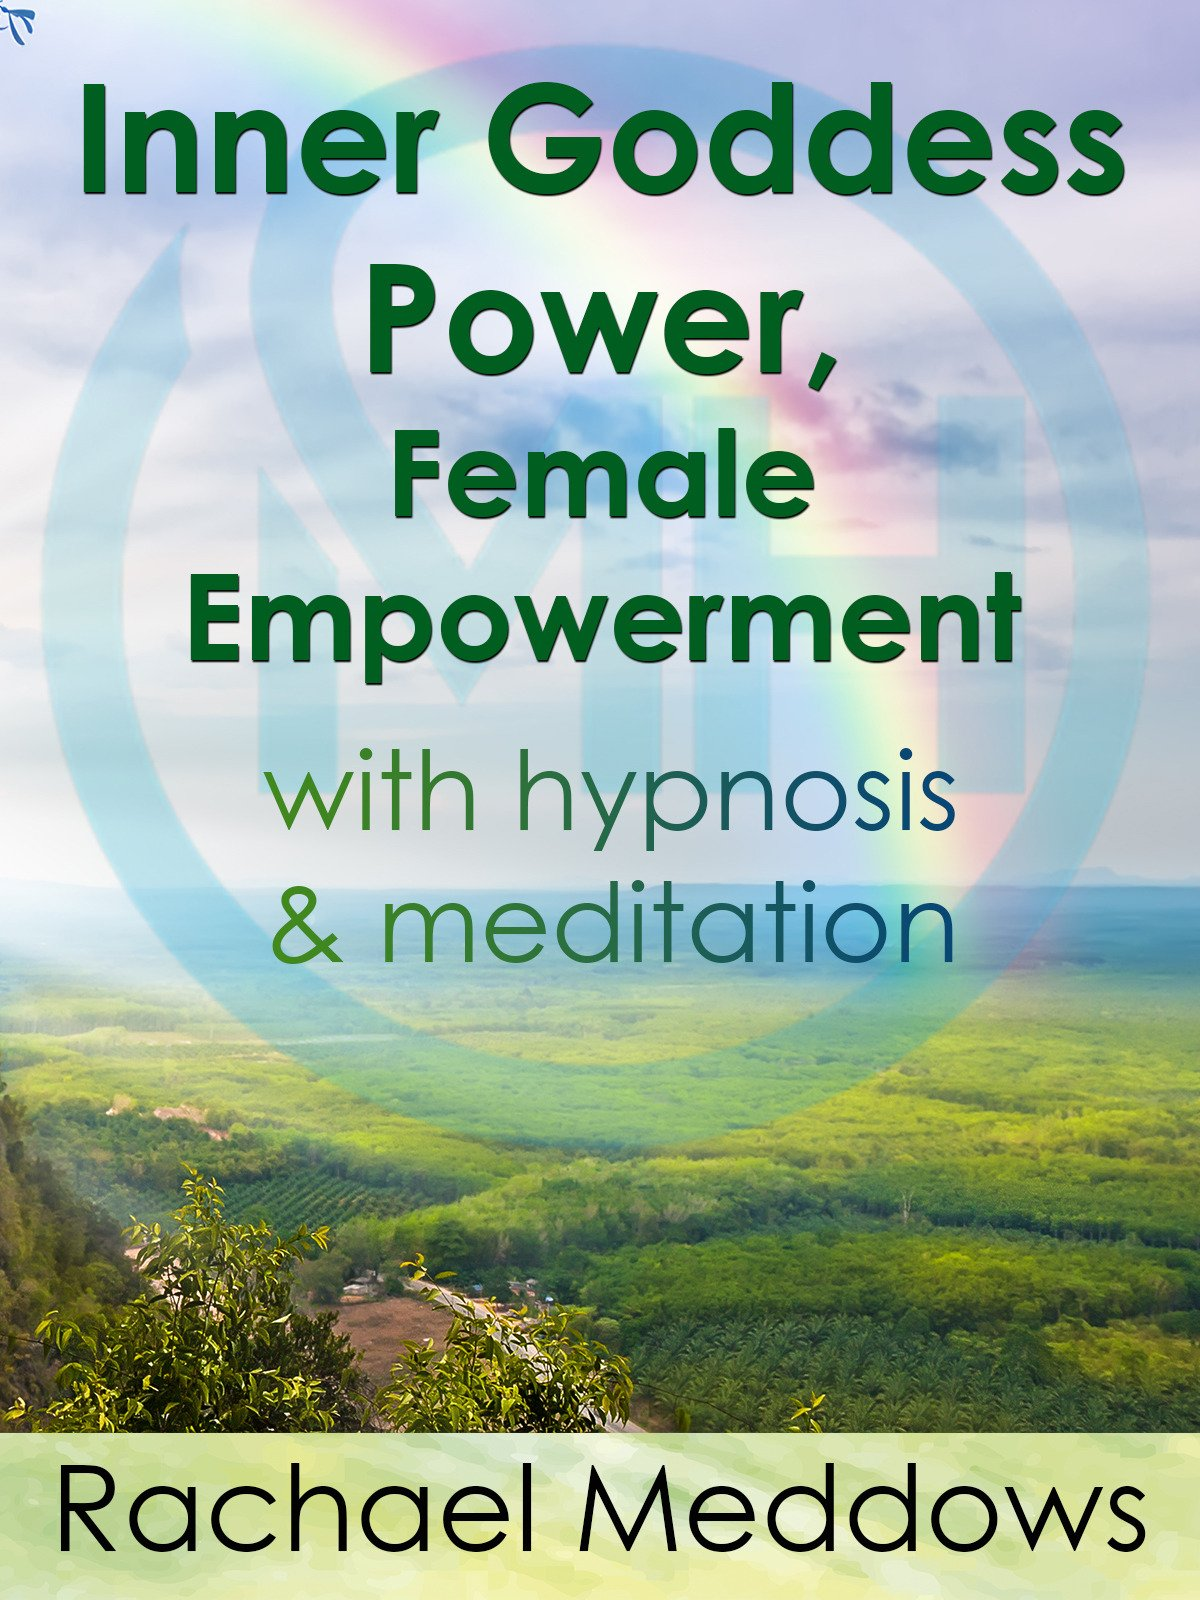 Inner Goddess Power, Female Empowerment with Meditation & Hypnosis from Rachael Meddows